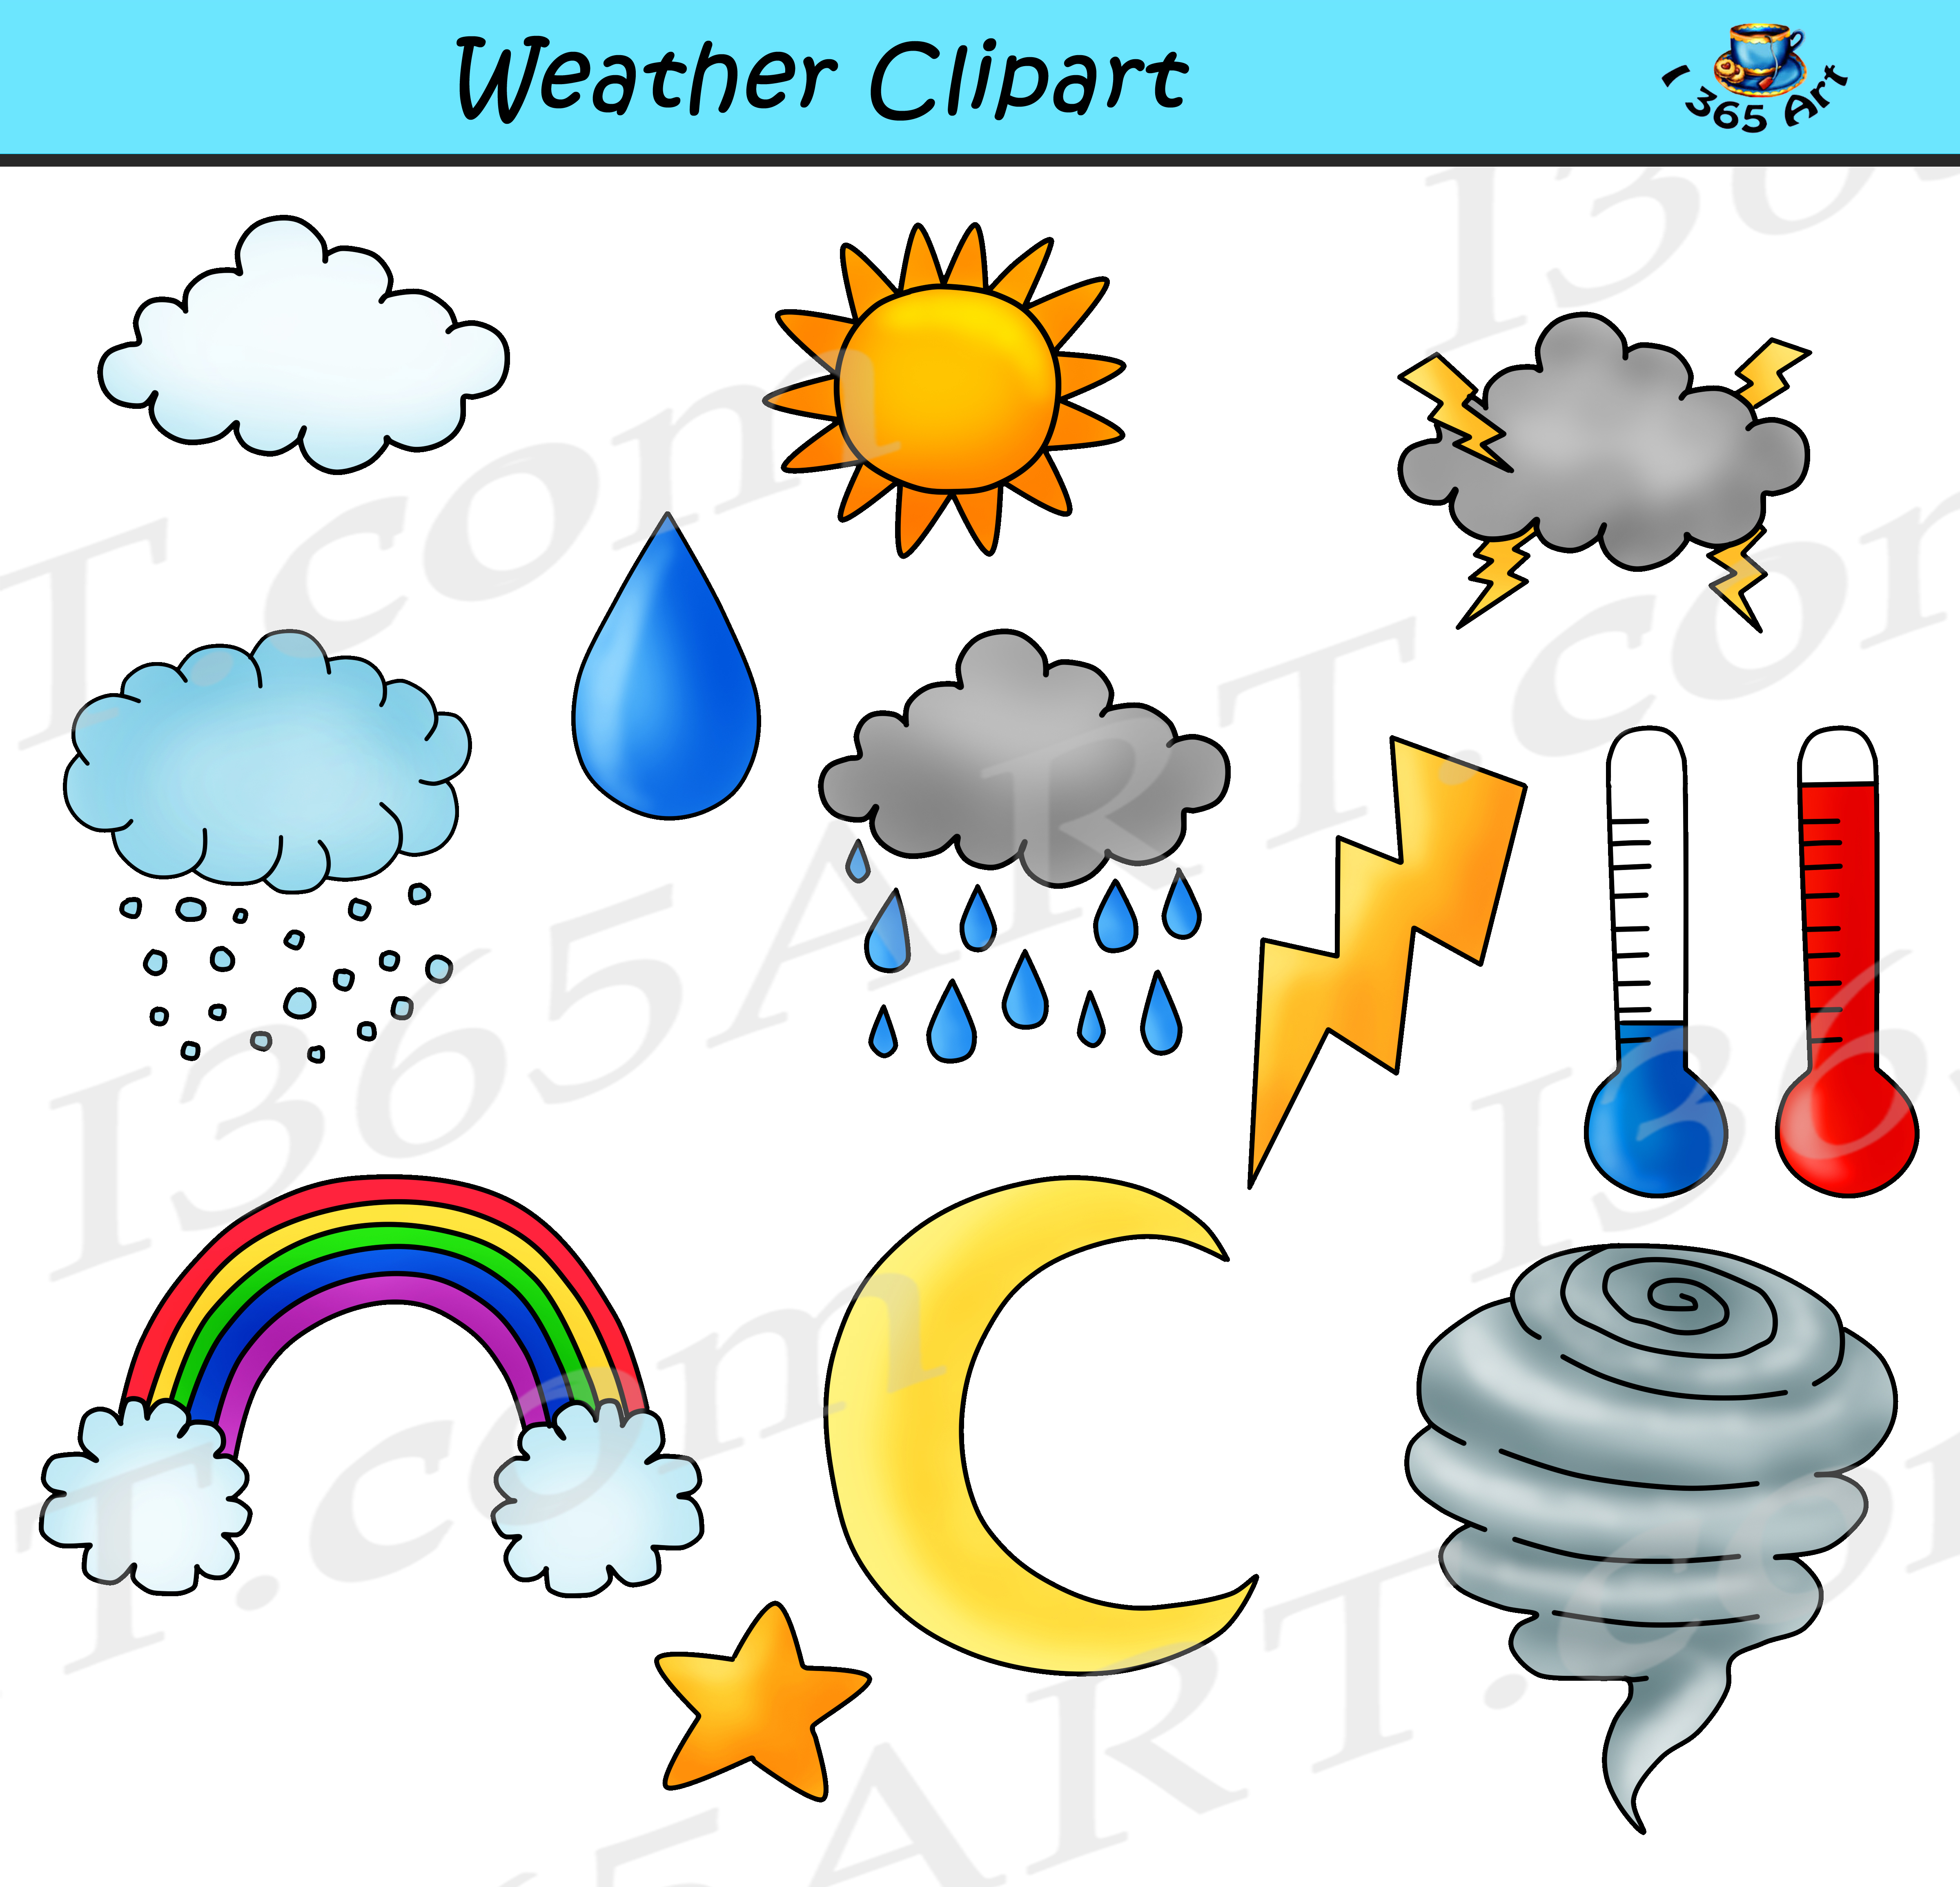 weather clipart bundle set commercial use clipart for school rh clipart4school com clipart for schools free clipart for school subjects